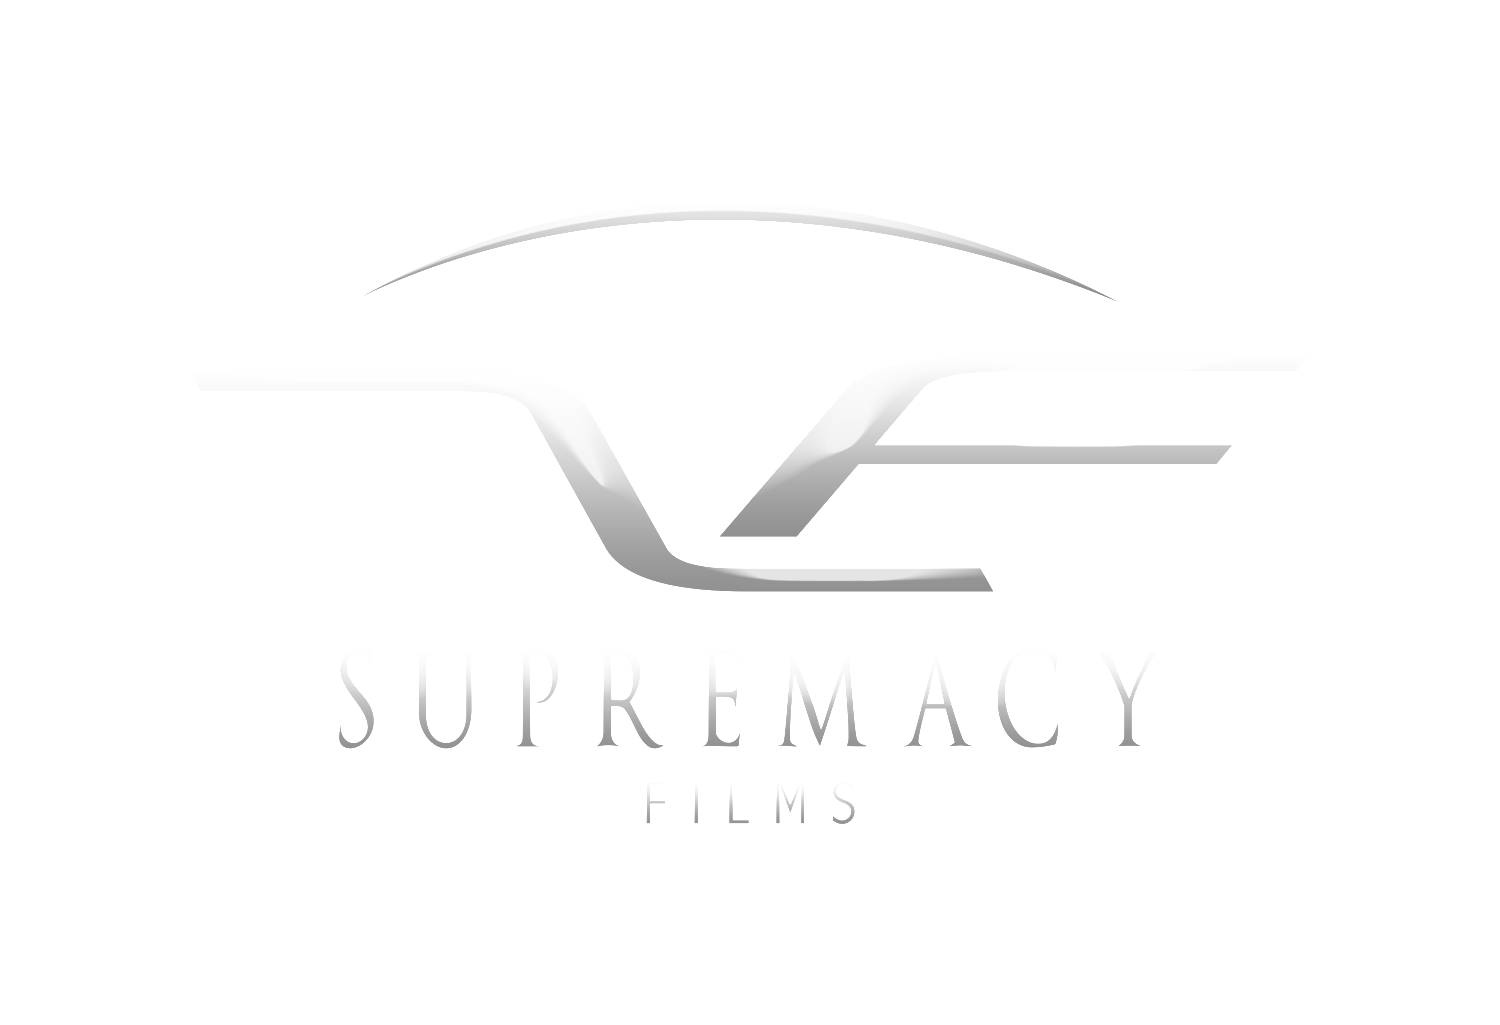 Supremacy Films